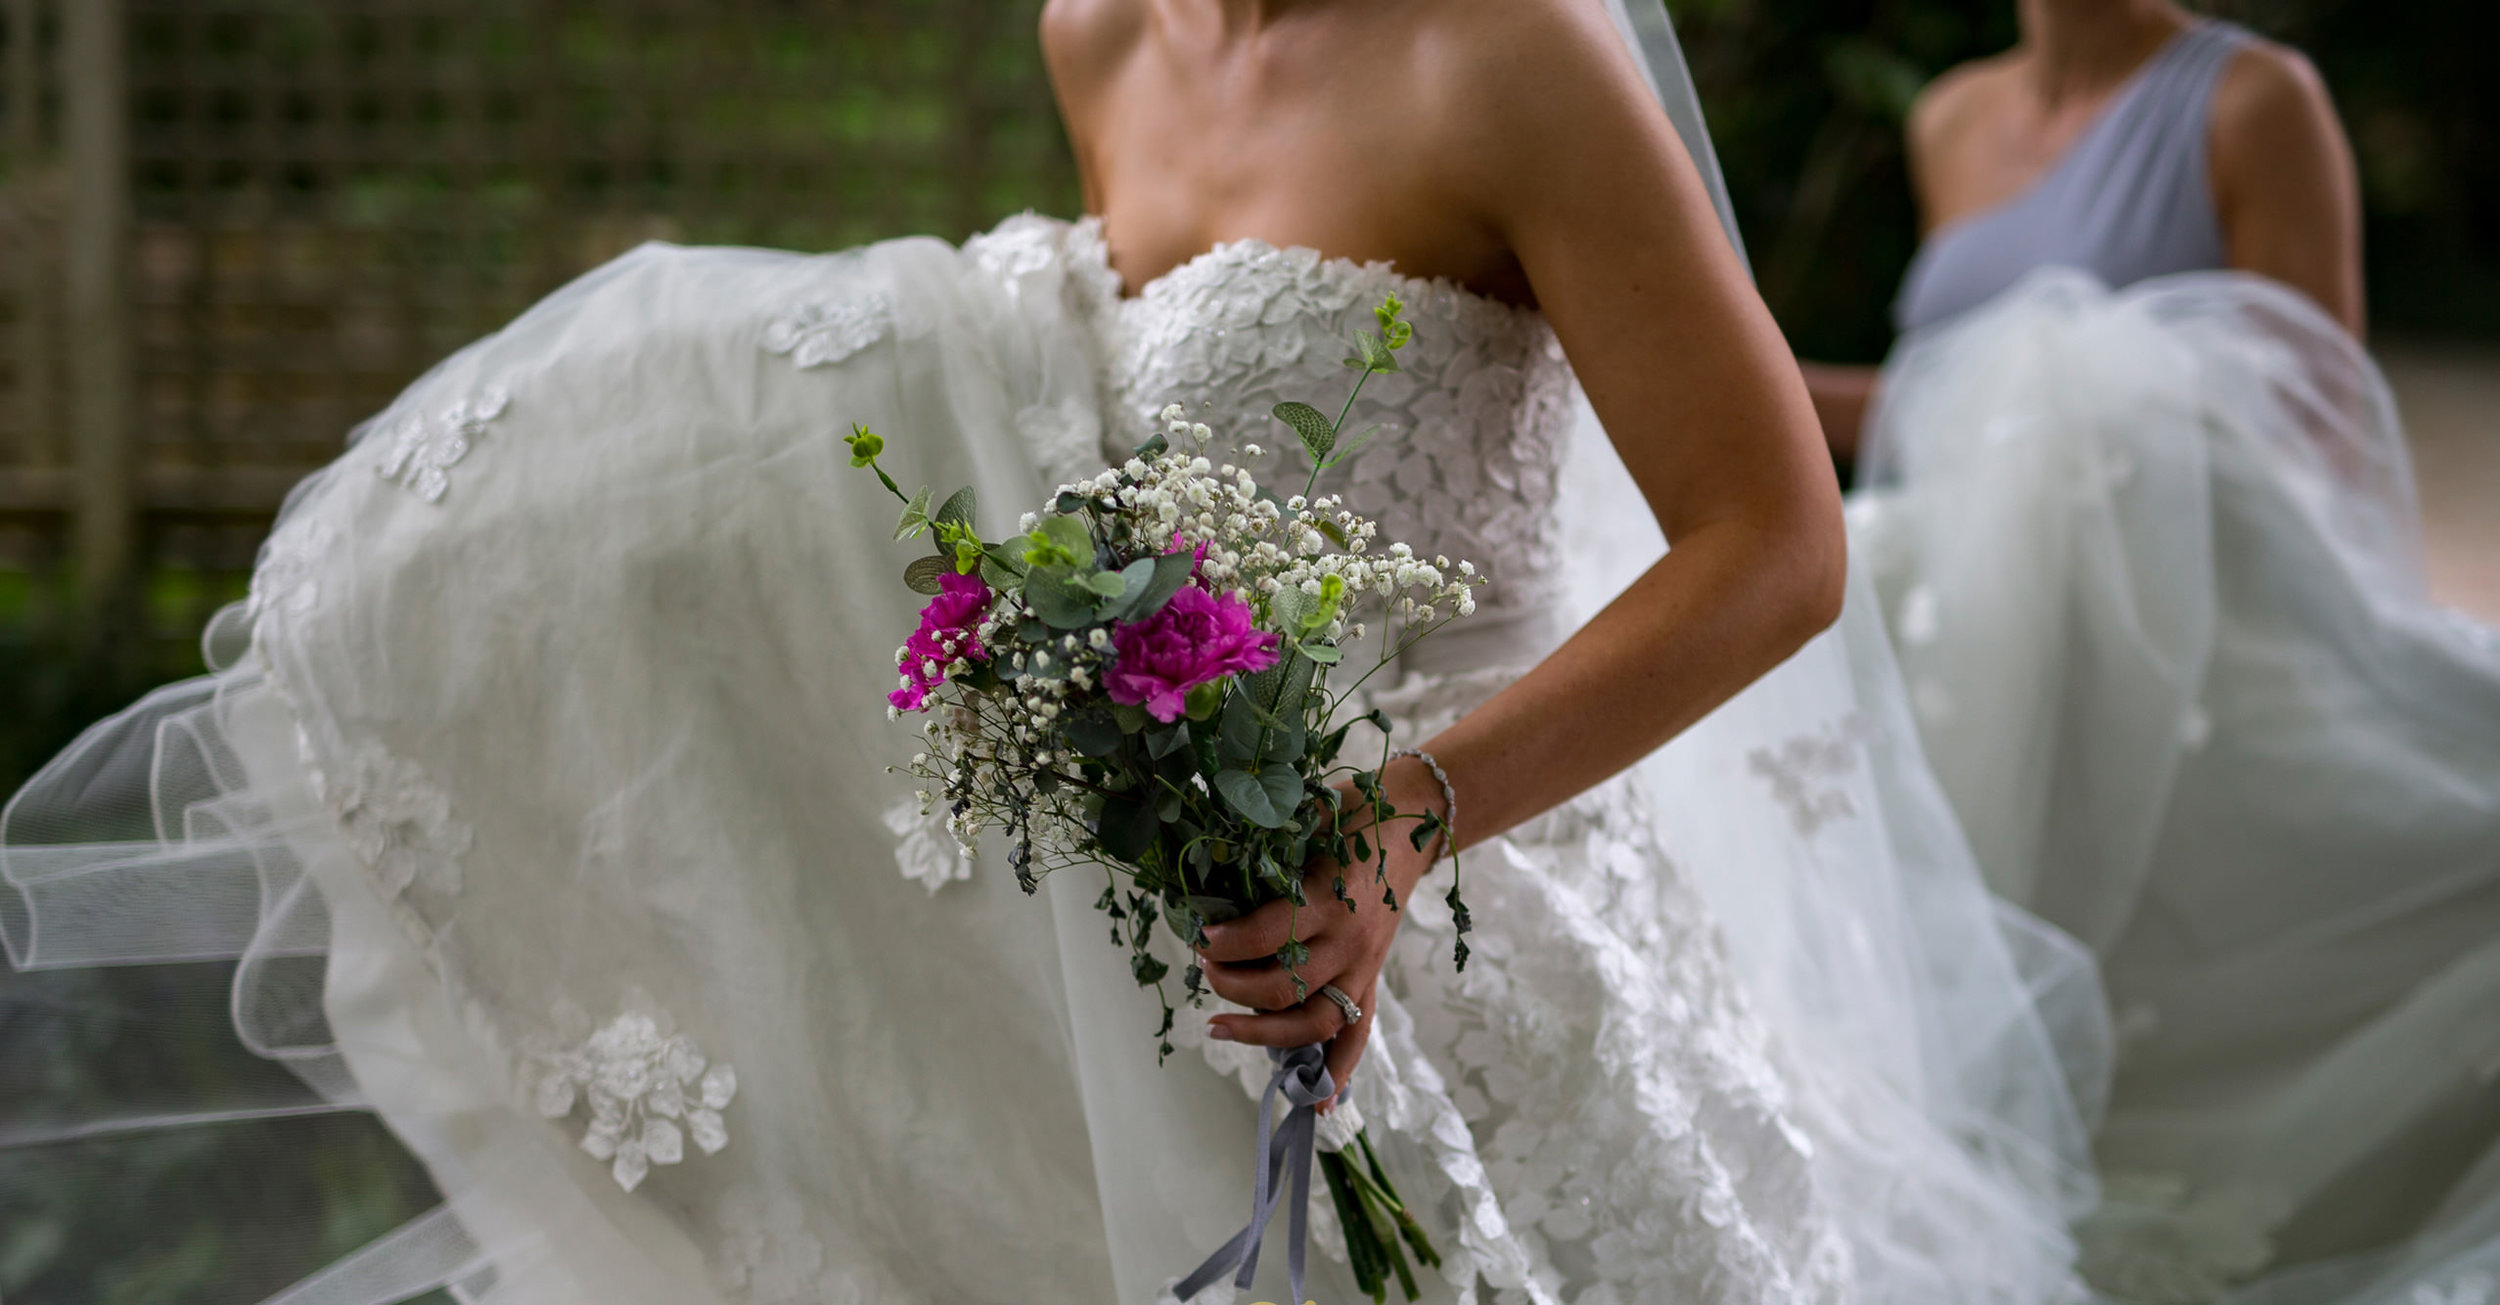 Wedding Albums Options - When all that remains are the memories